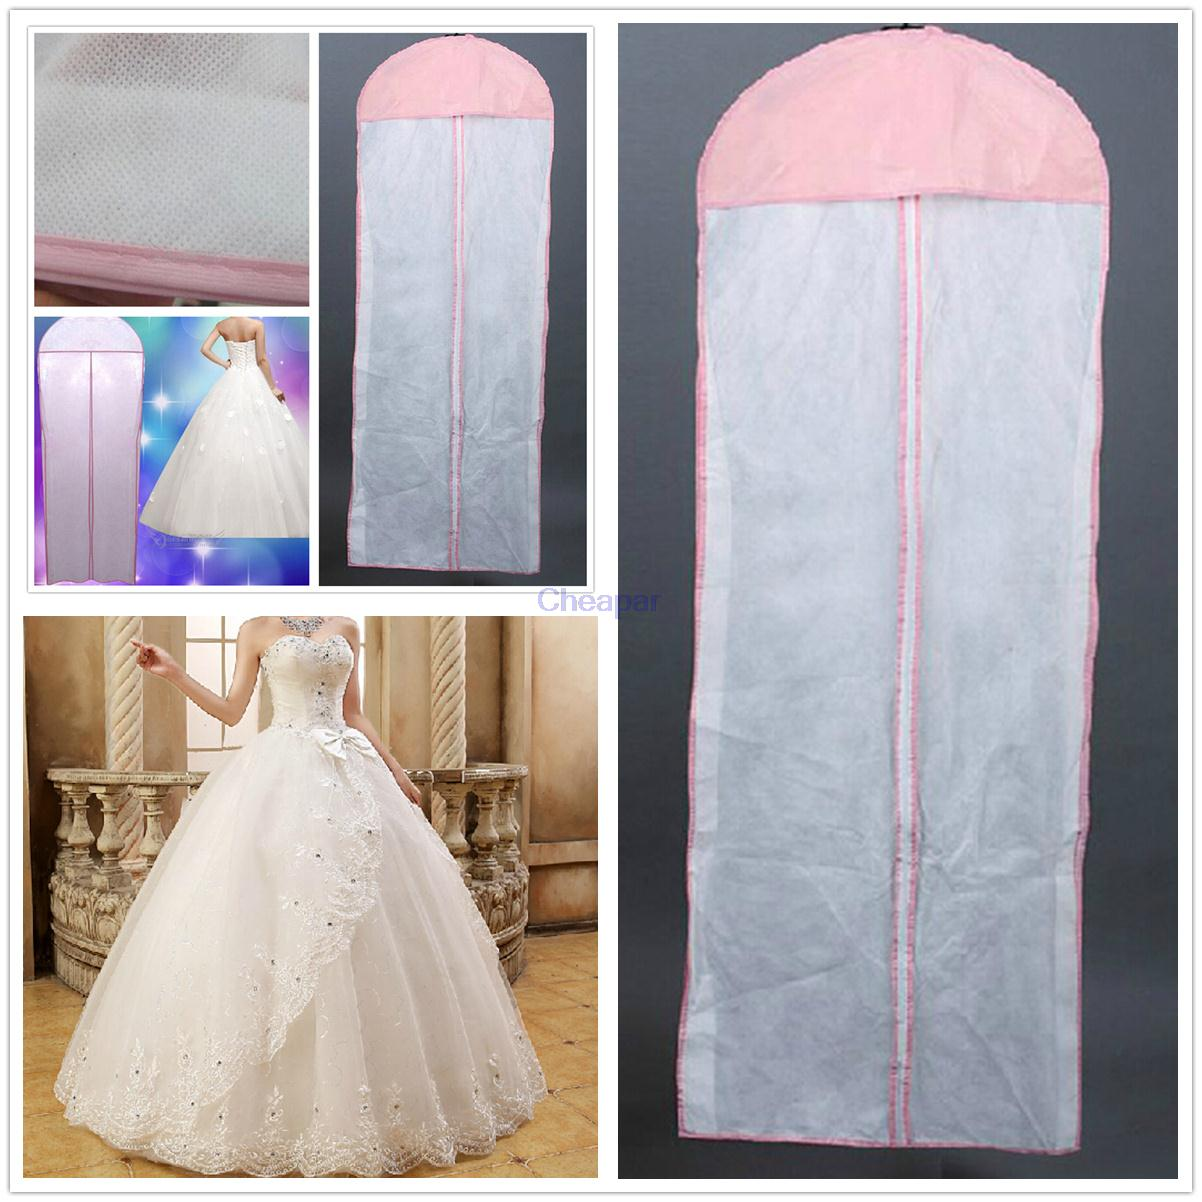 New White Breathable Wedding Prom Dress Bridal Gown Garment Hanging Storage Bag Clothes Dust Cover Zip CANDYKEE